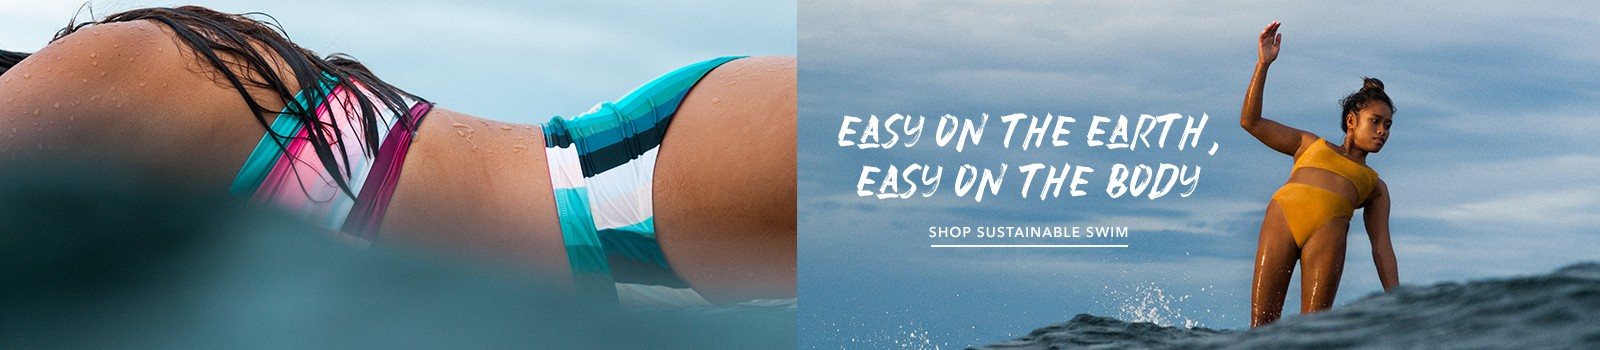 EASY ON THE EARTH, EASY ON THE BODY  Join us in a sea of change as we journey down a cleaner path to surfing our oceans.  SHOP THE NEW ECO COLLECTION